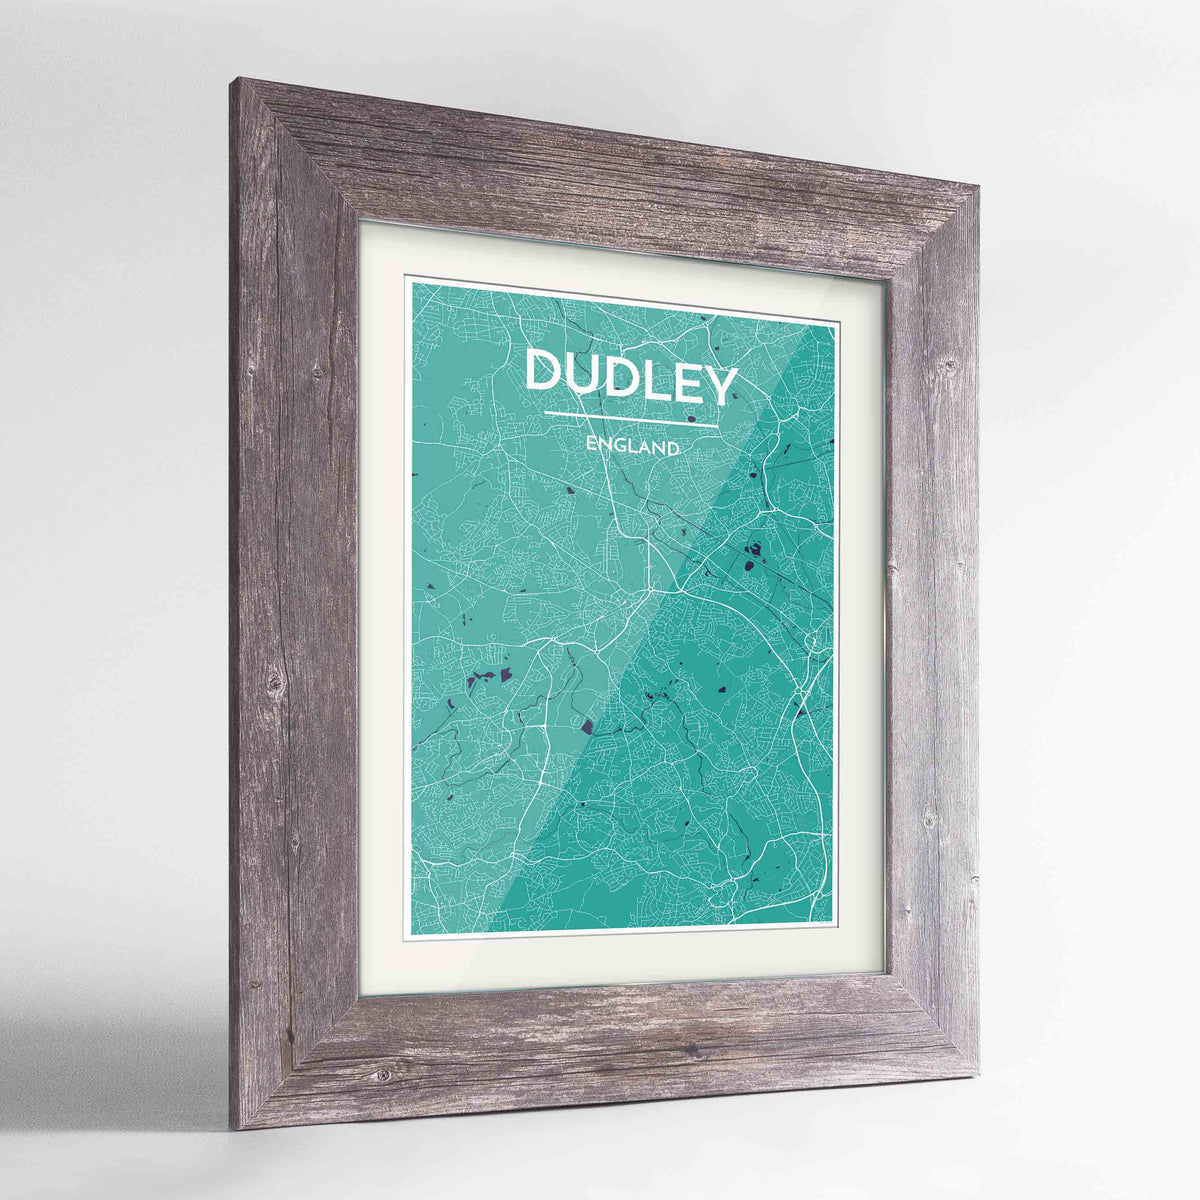 "Framed Dudley Map Art Print 24x36"" Western Grey frame Point Two Design Group"